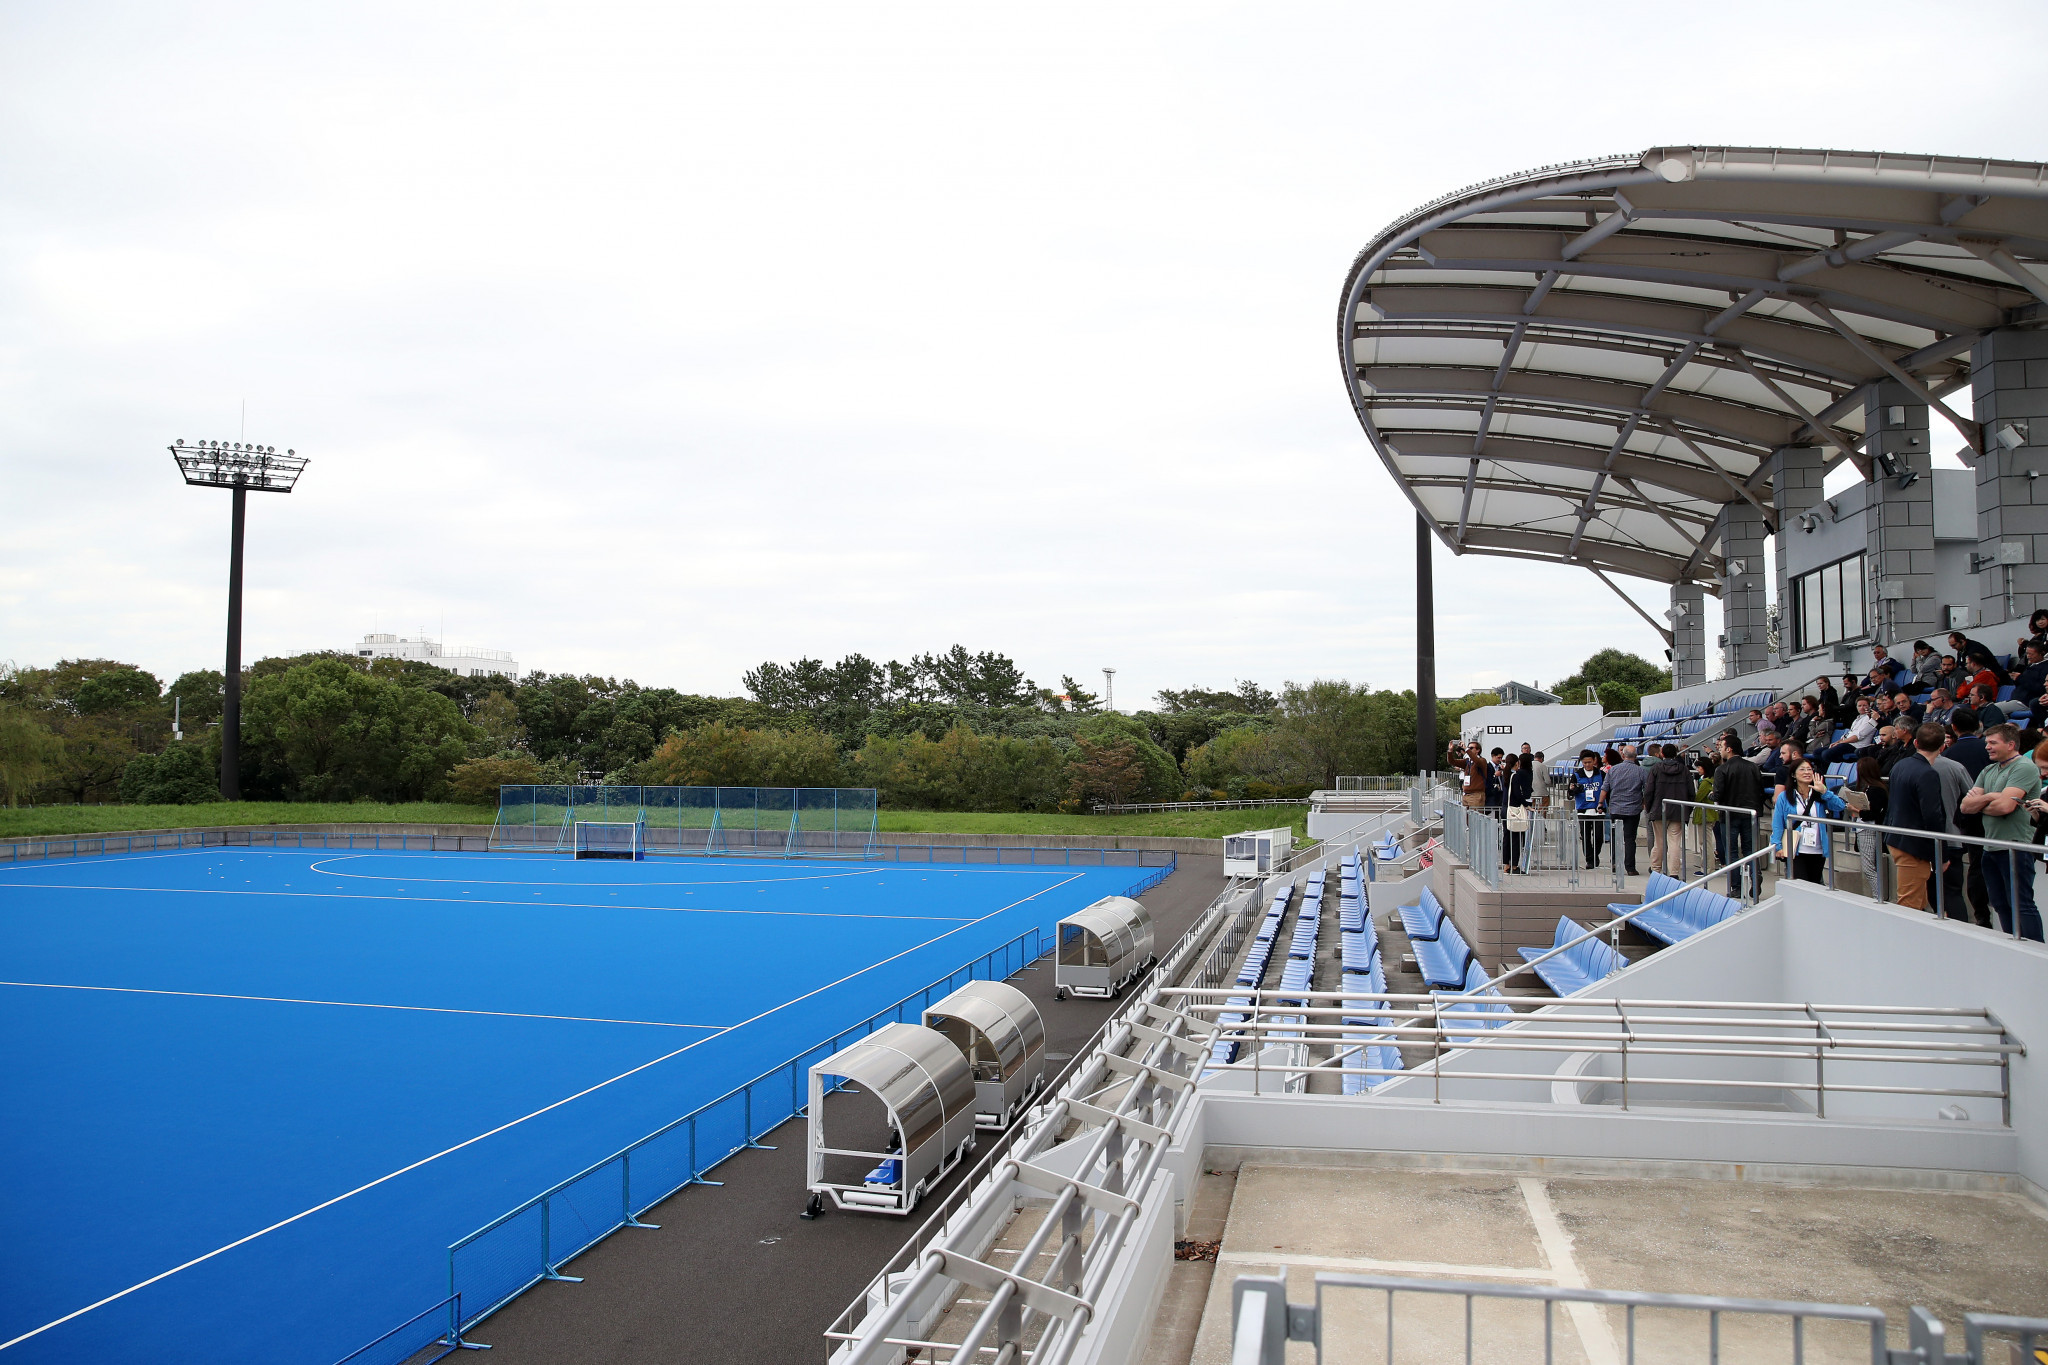 John Coates called for further legacy planning for rowing, canoeing and hockey venues ©Getty Images